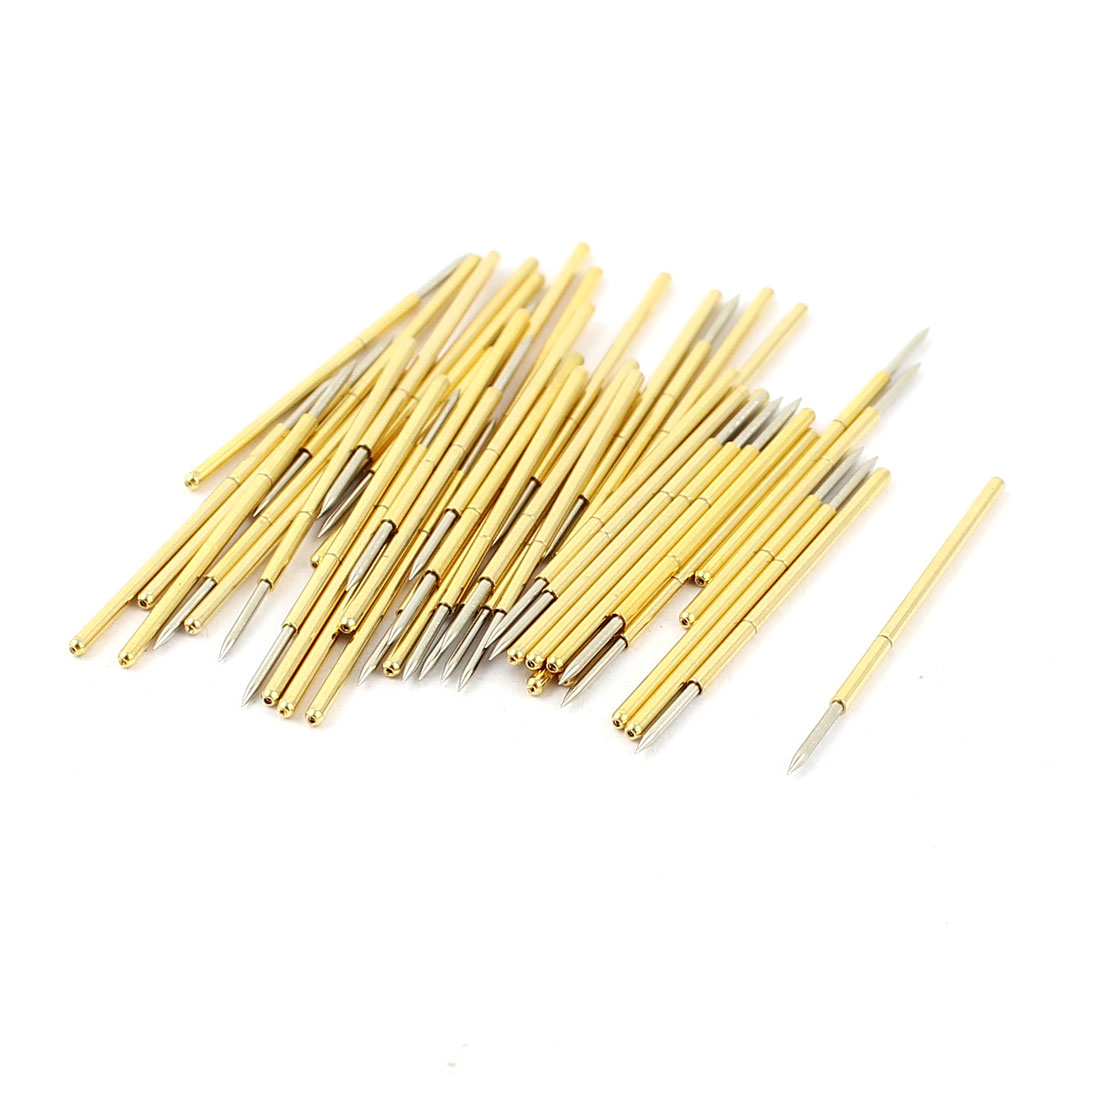 50 Pcs PM75-B1 0.74mm Spear Tip Spring Testing Probes Pin 27.8mm Length